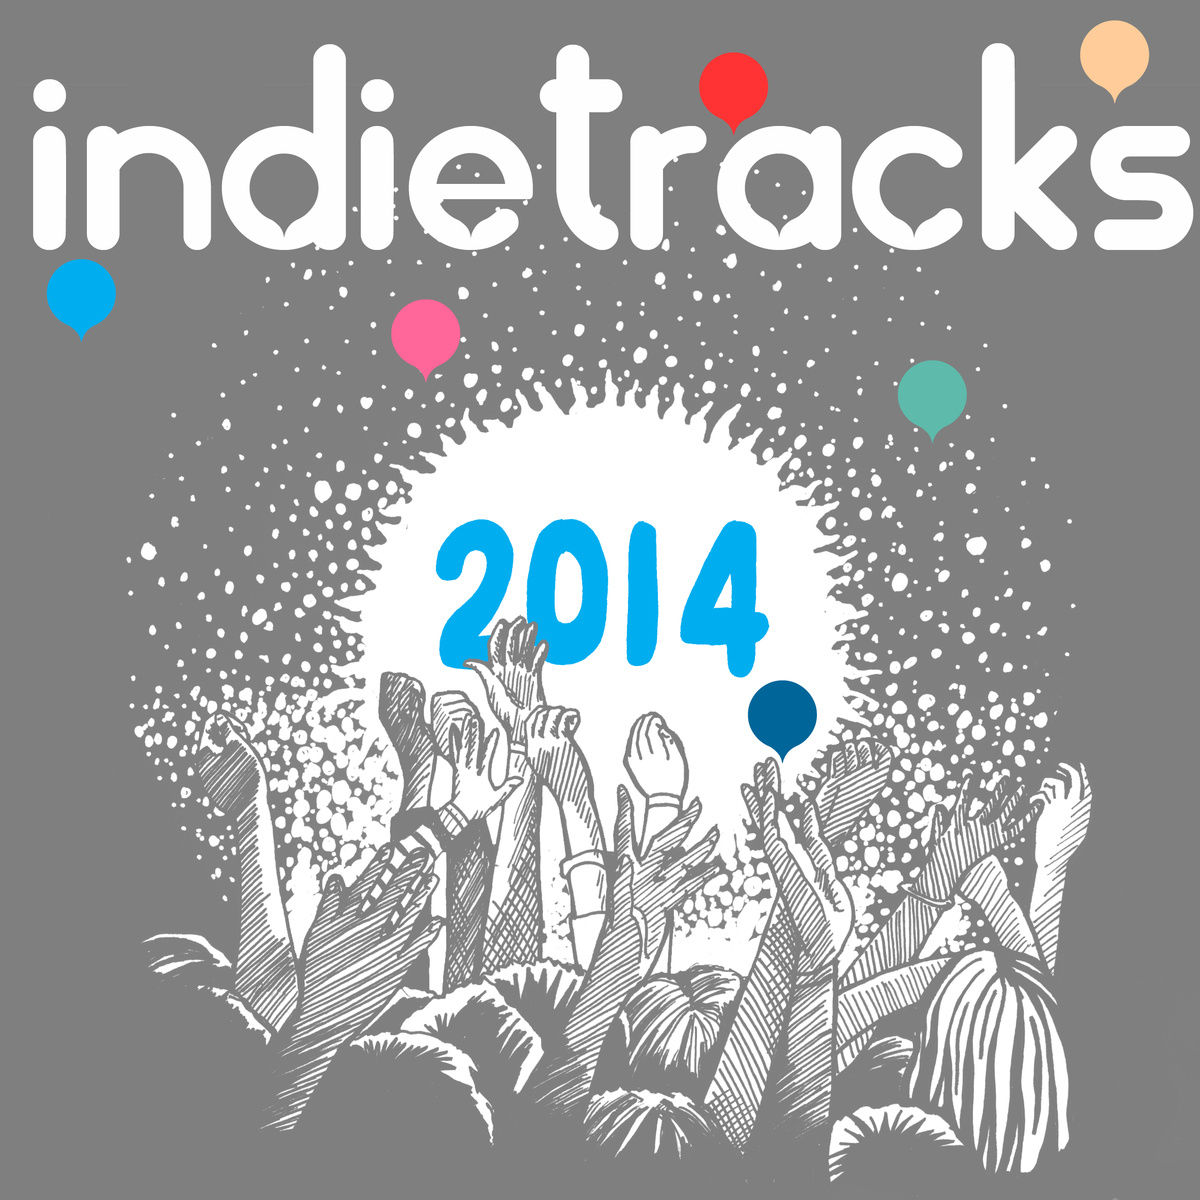 Poster for 26 July 2014 at Indietracks Festival, Derbyshire, UK